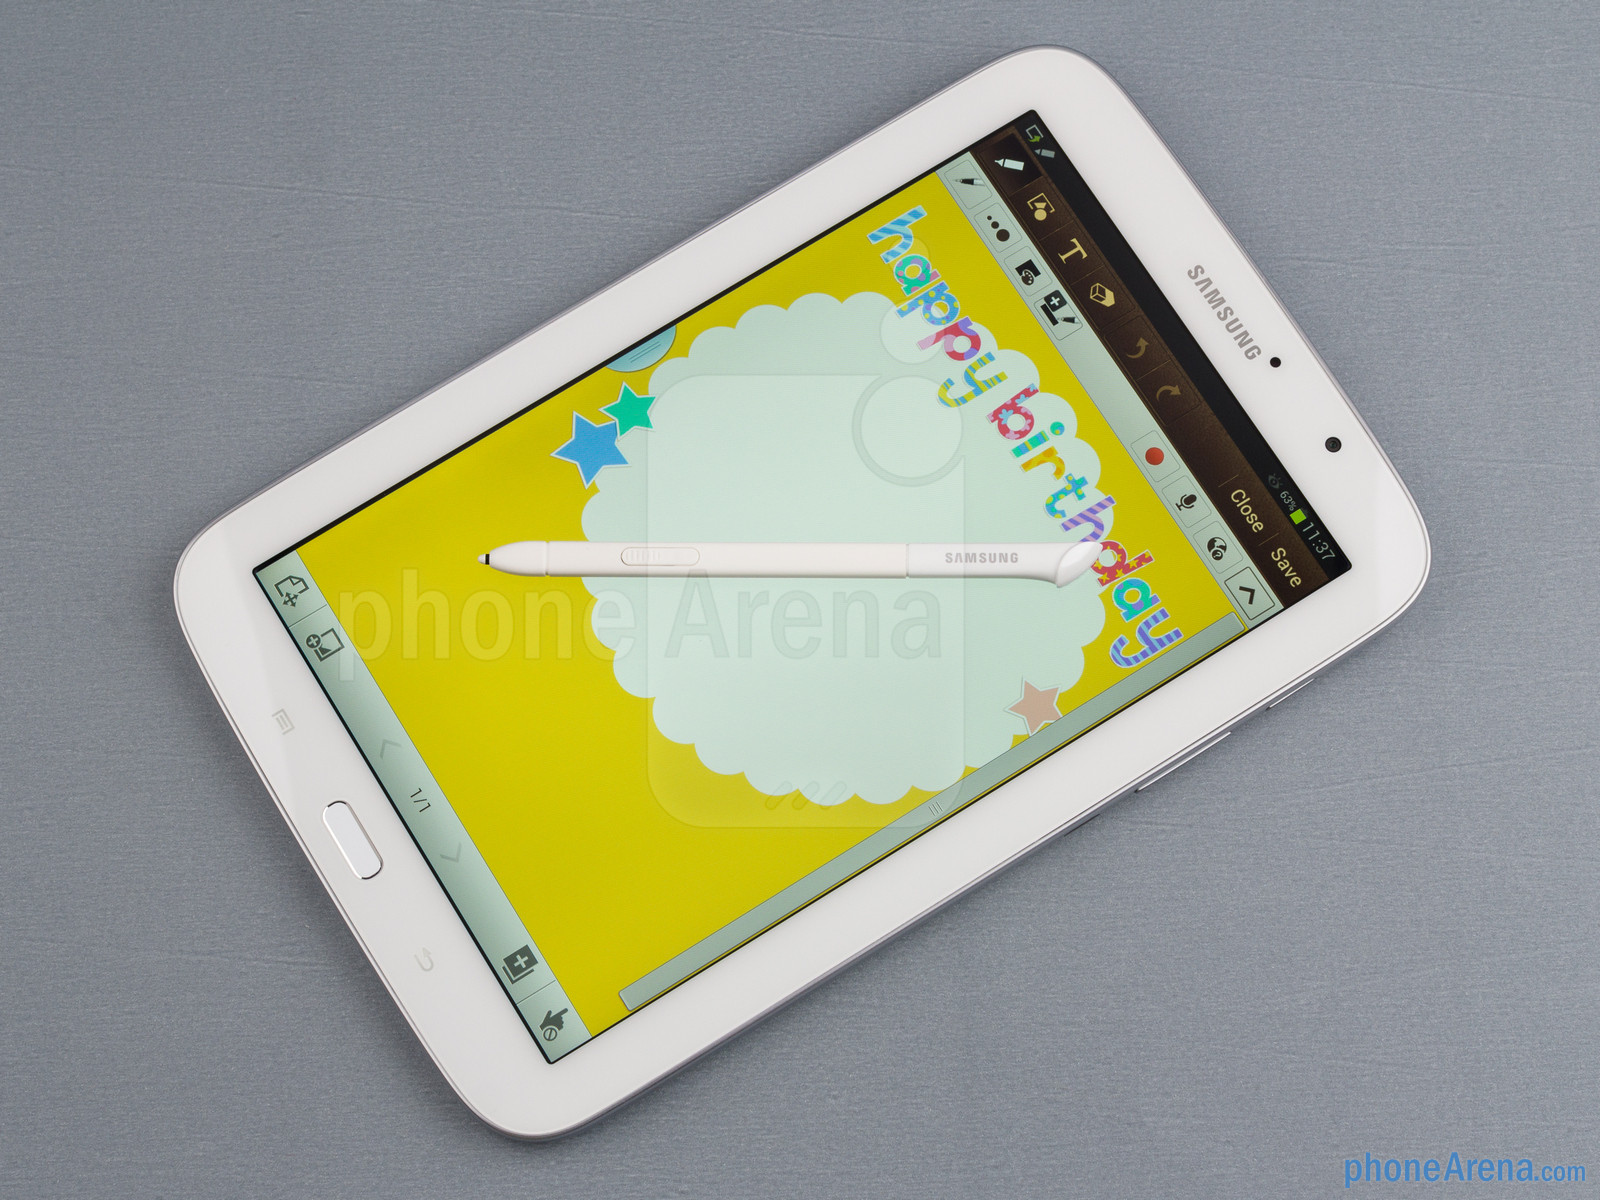 Samsung, Galaxy, Galaxy Note, Google, Nexus 7, mobile-news